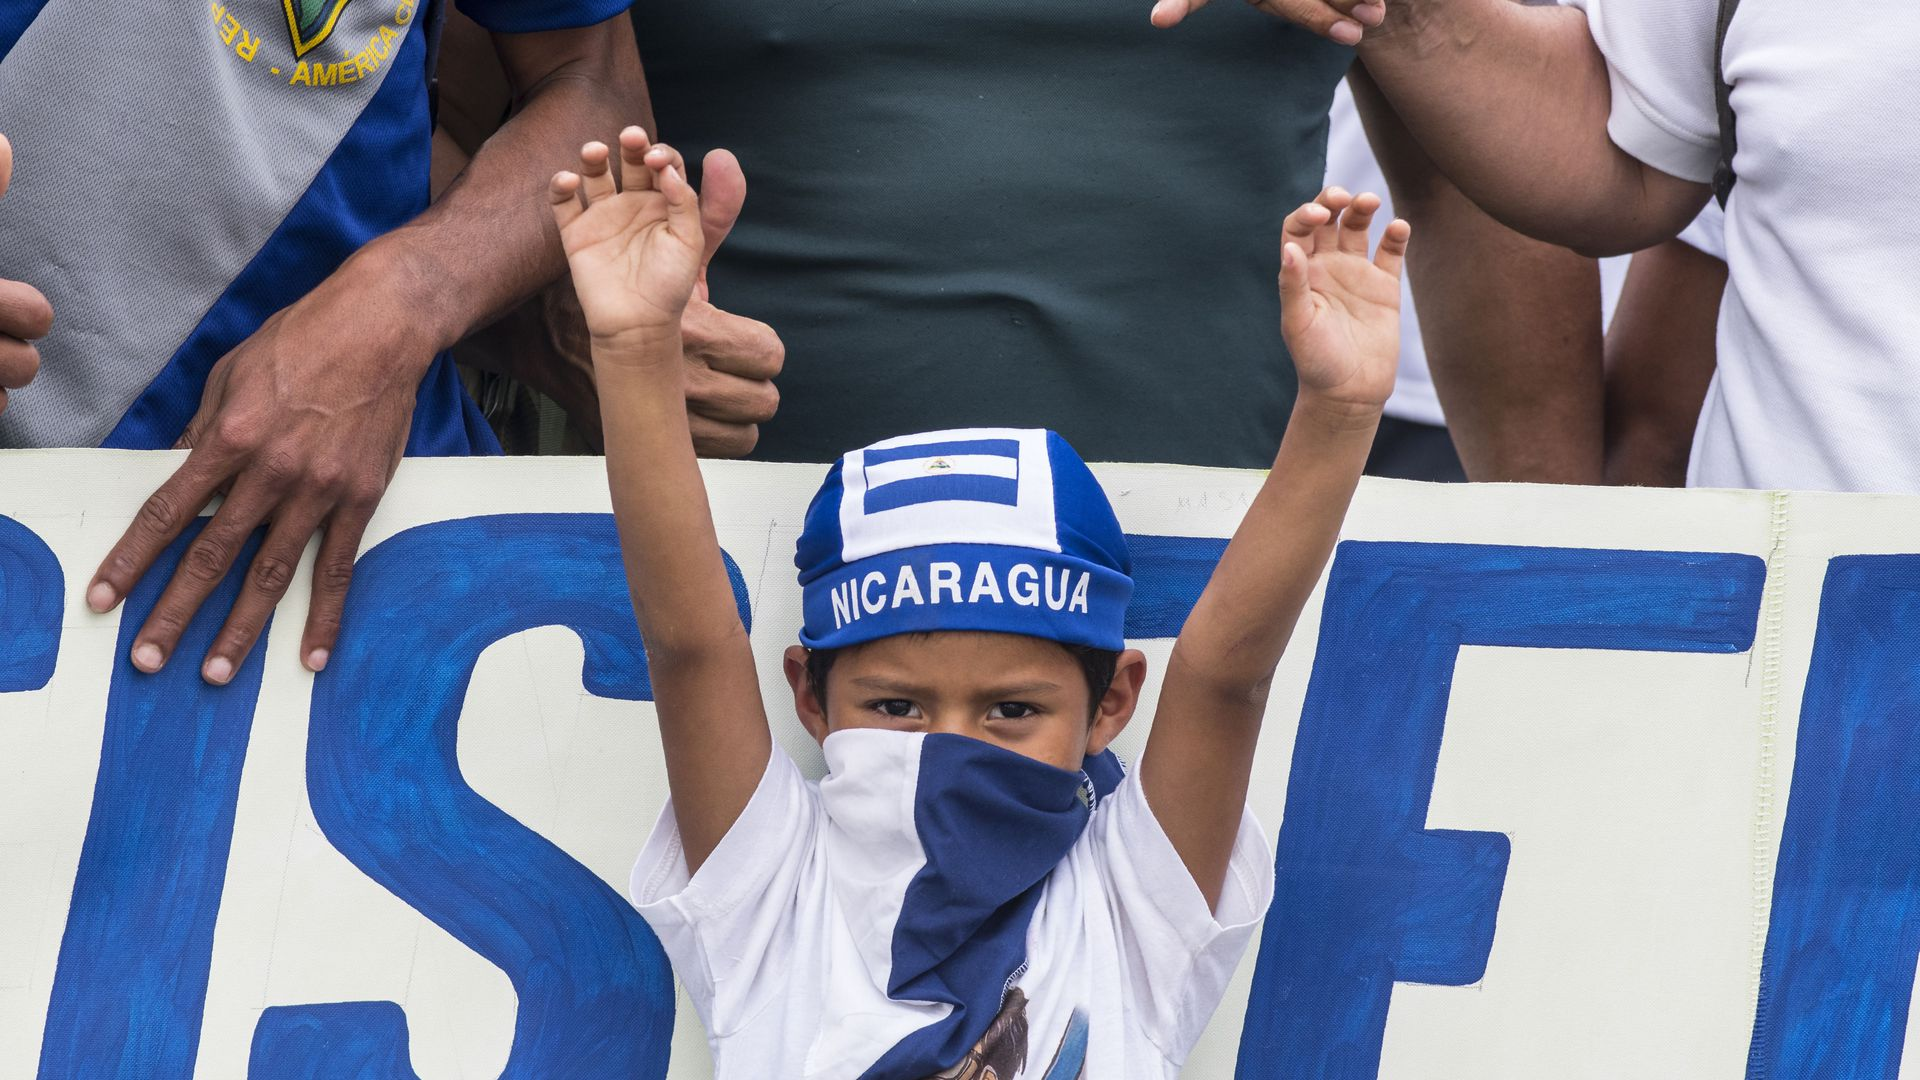 Nicaraguans demonstrate outside the Nicaraguan Embassy in San Jose, Costa Rica on January 12, 2019, to protest against the arrest of opposition journalists.